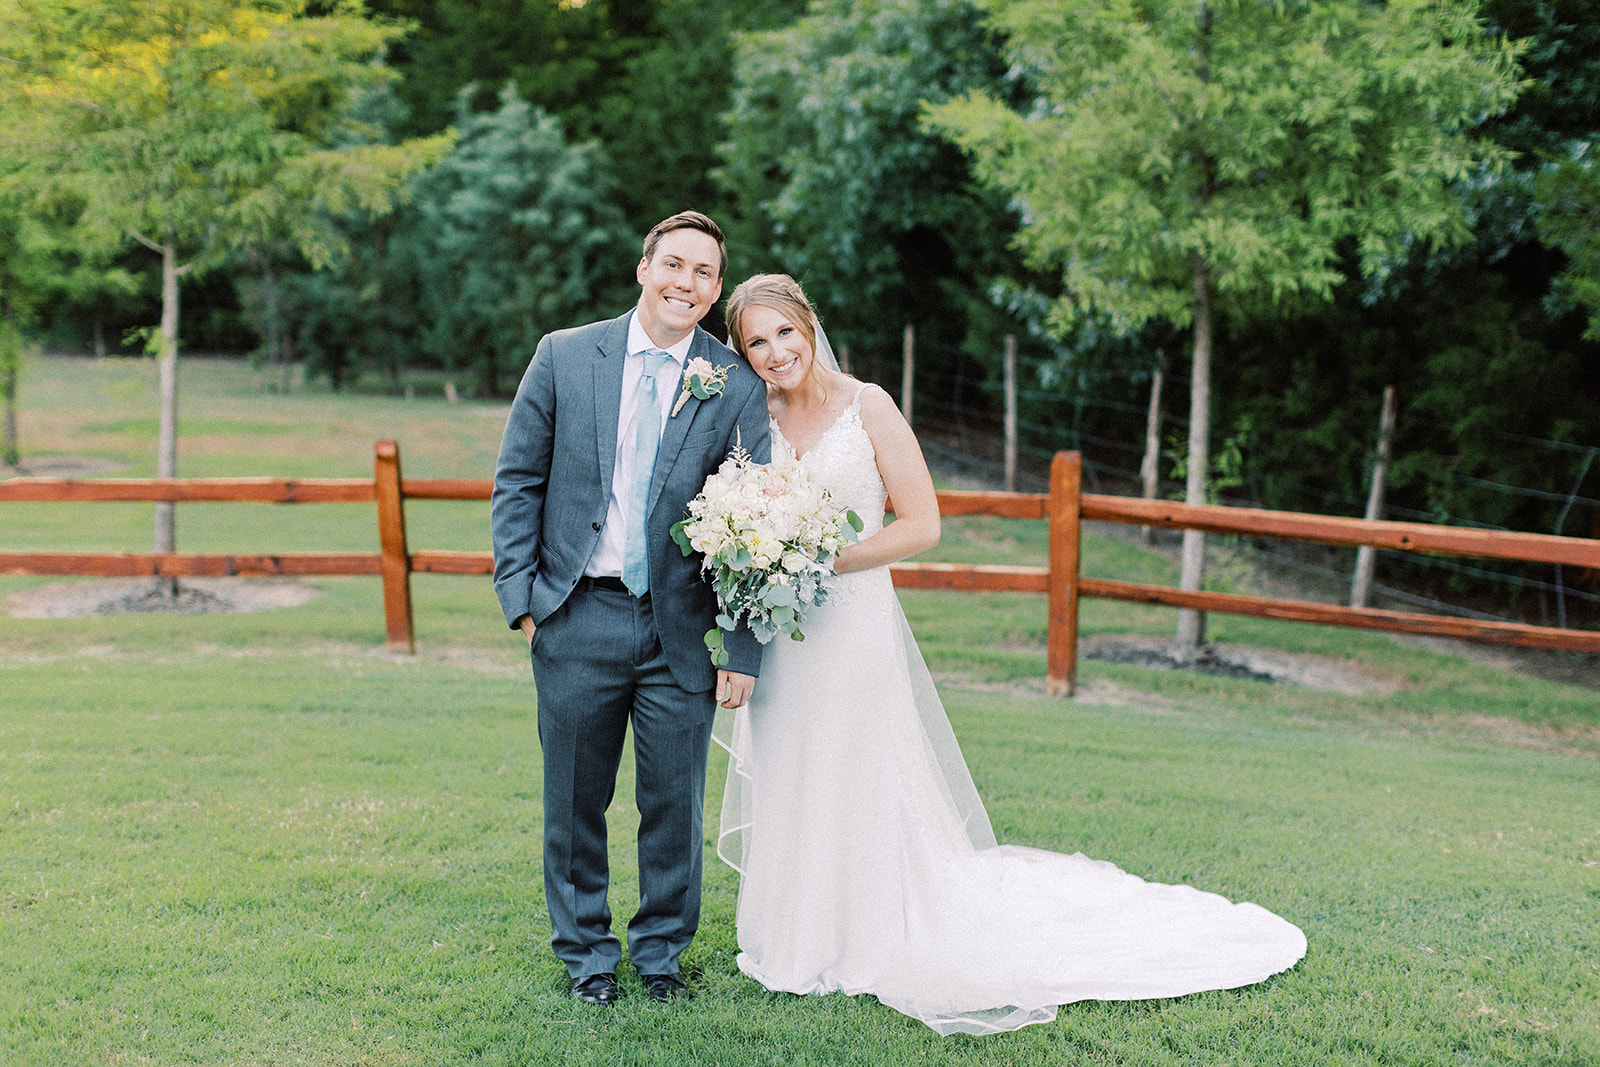 Texas wedding photography: | Romantic blue Texas wedding at Spring Venue by Alexa Kay Events